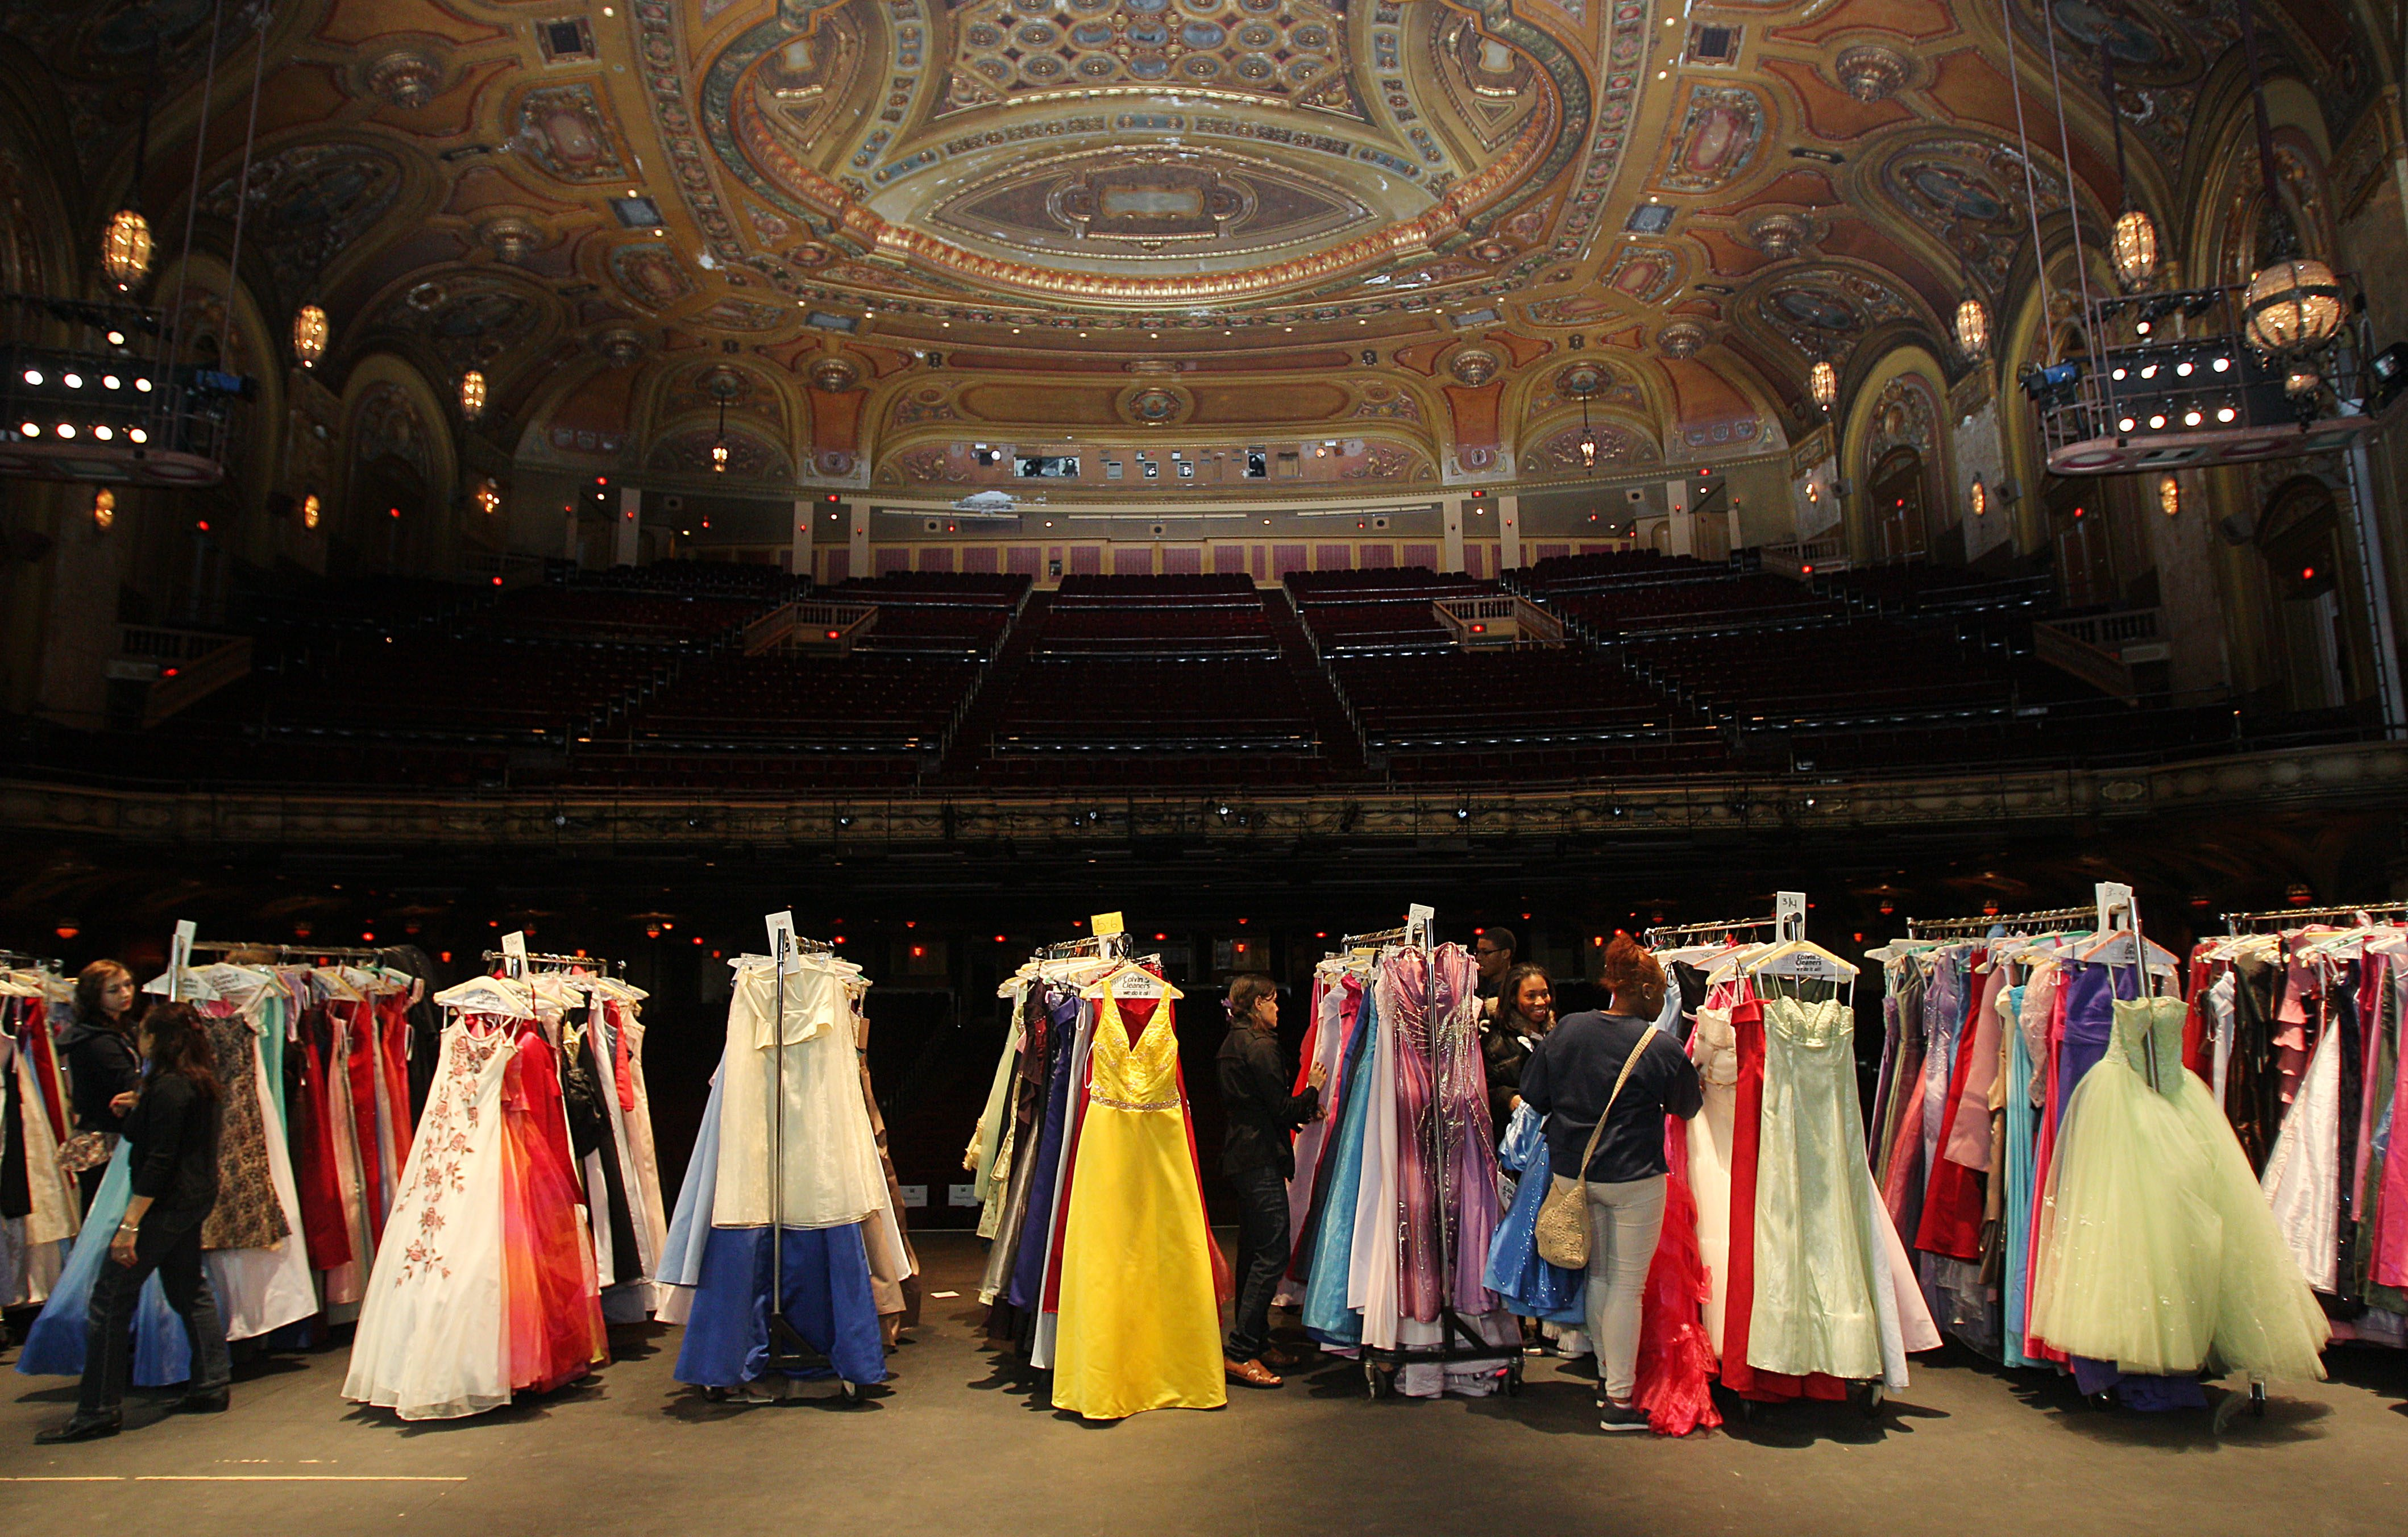 Thousands of gowns are needed for the 14th annual Gowns for Prom distribution at Shea's presented by Colvin Cleaners. (Sharon Cantillon/Buffalo News)